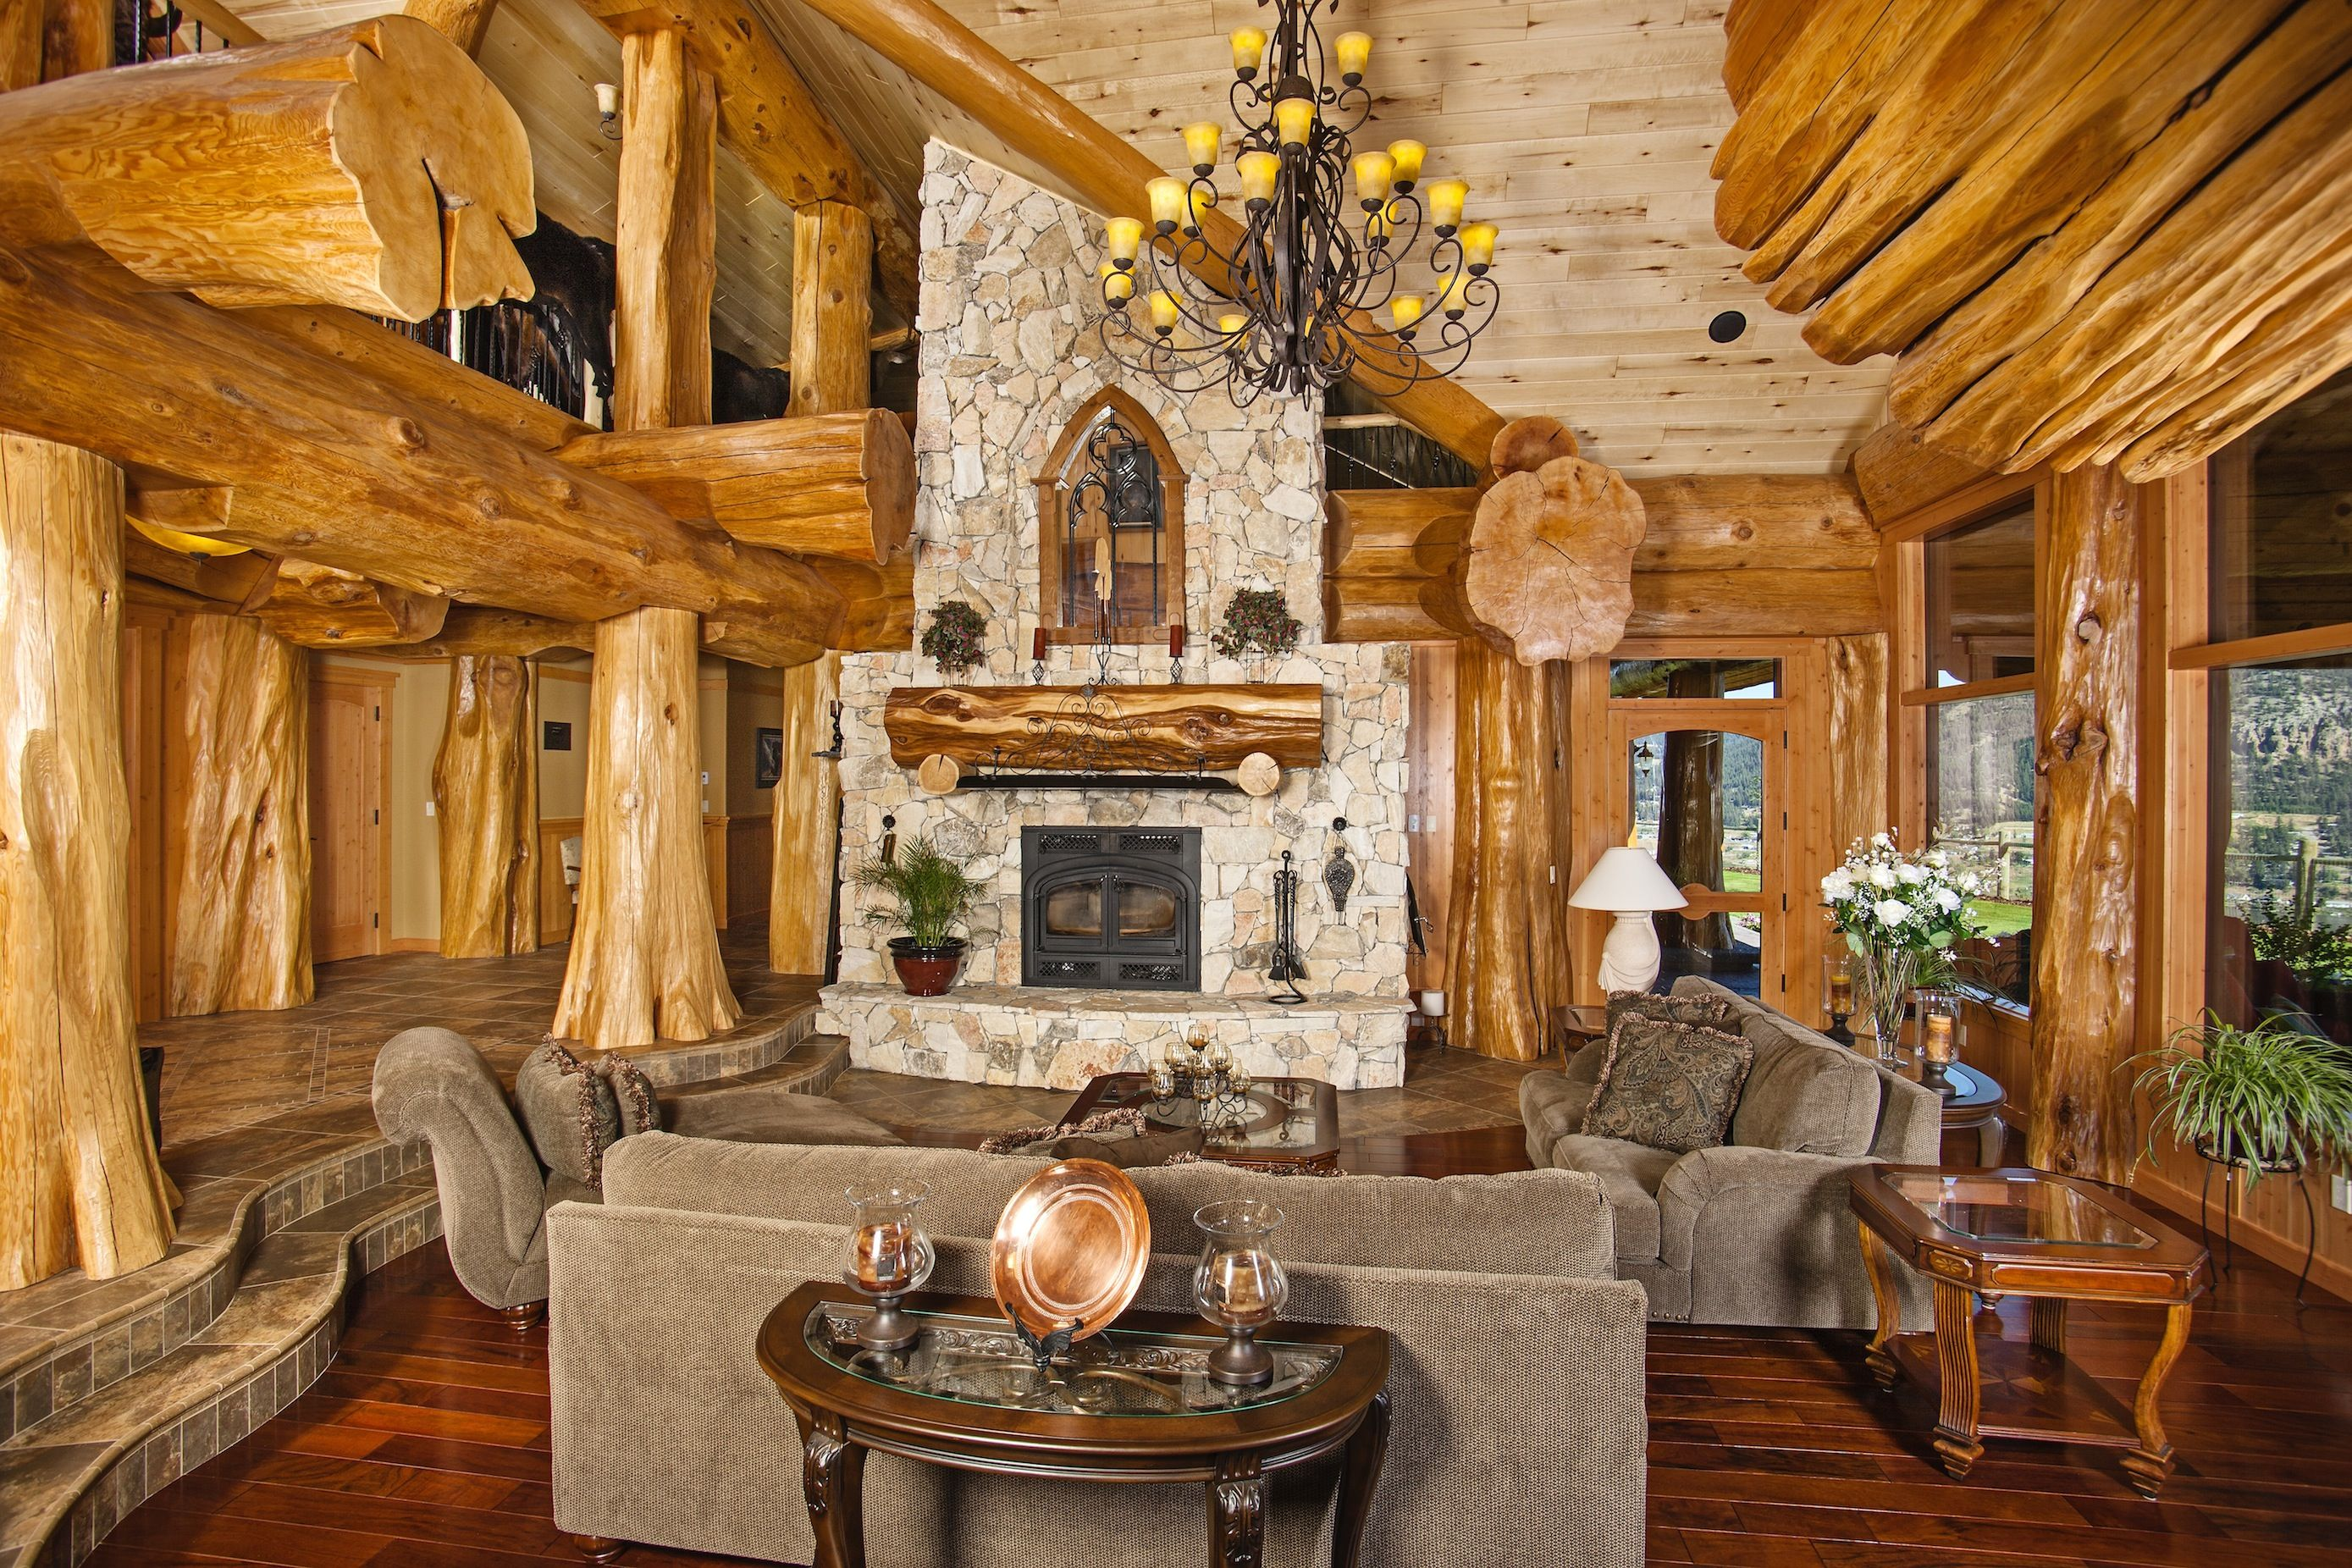 Log Home Living Room, Image Courtesy Of Hilliard Photographics.